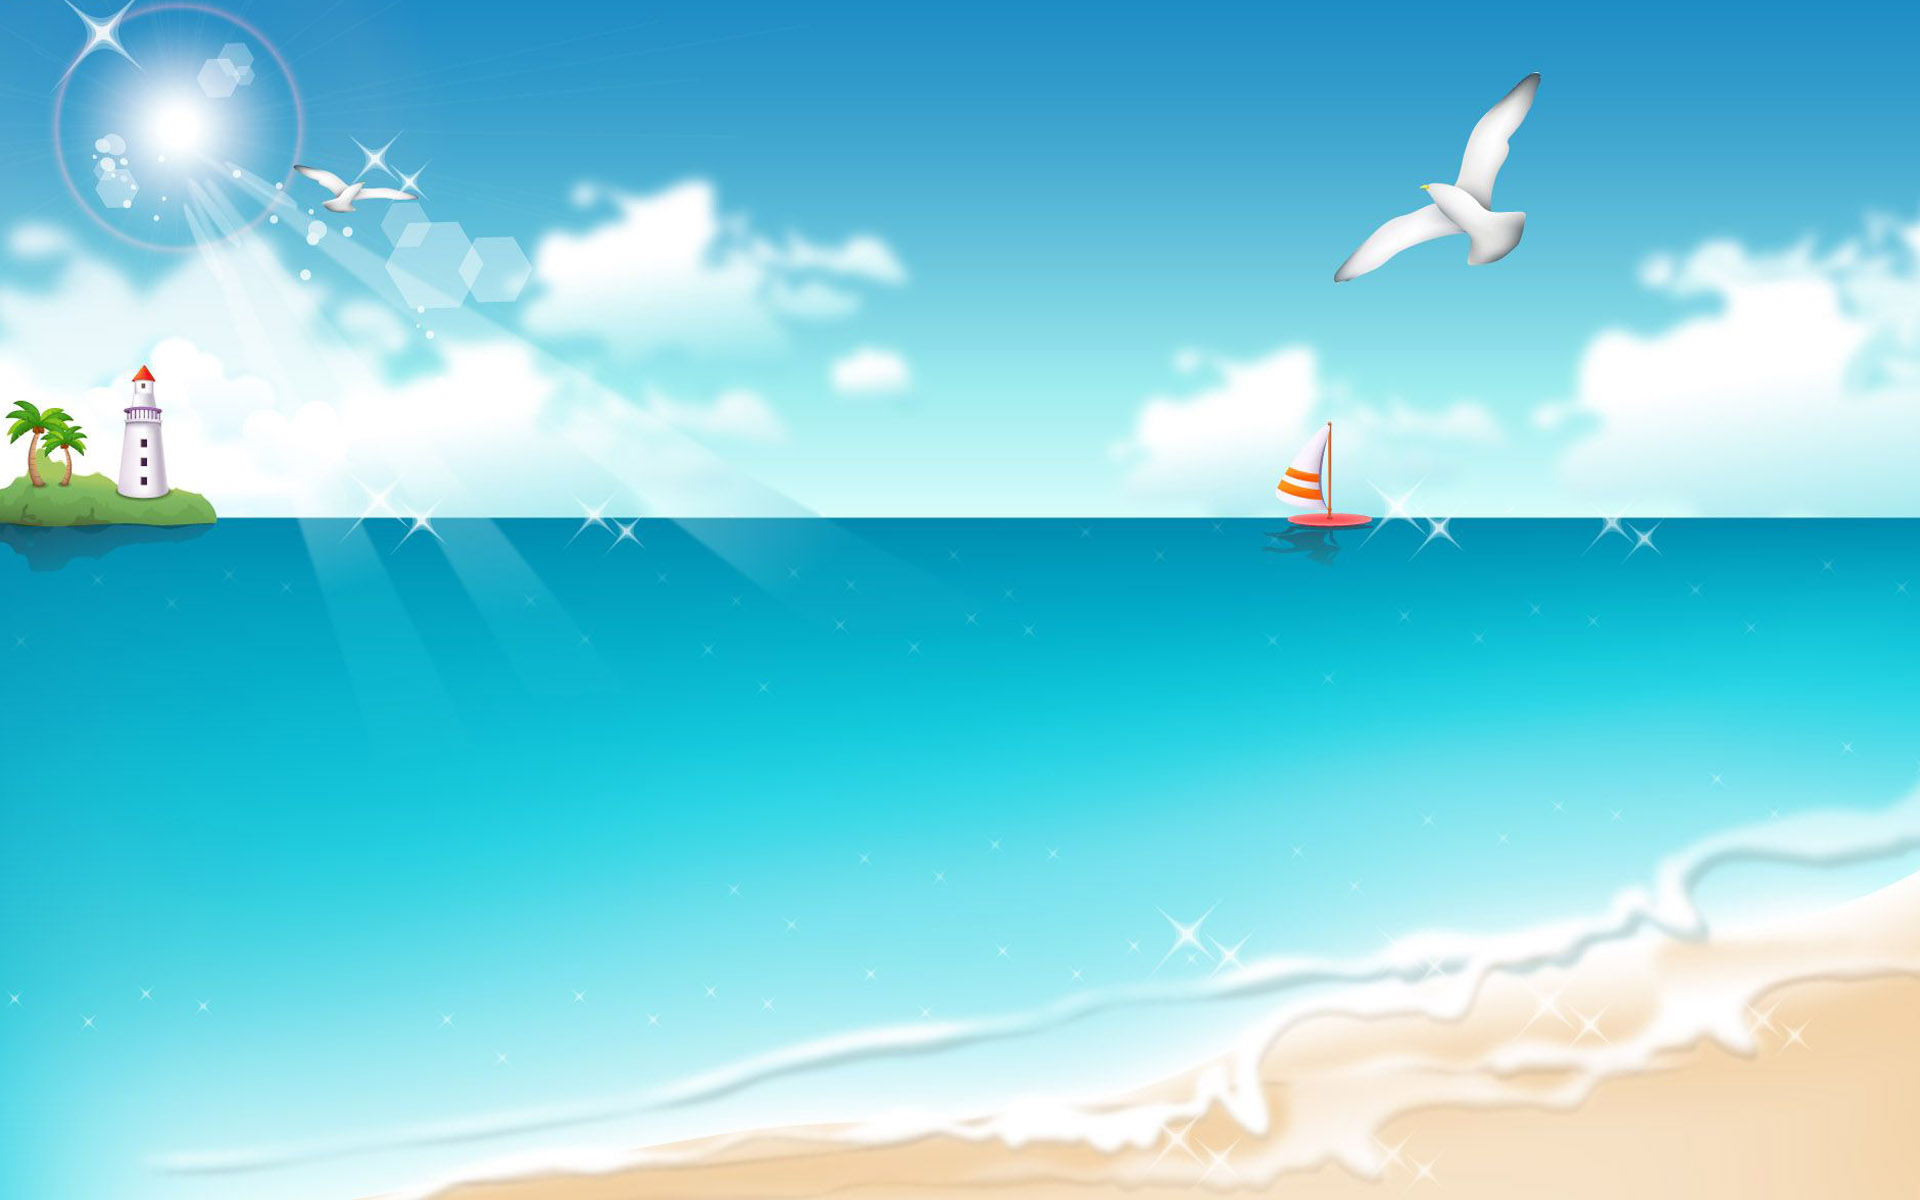 Anime beach clipart - ClipartFox